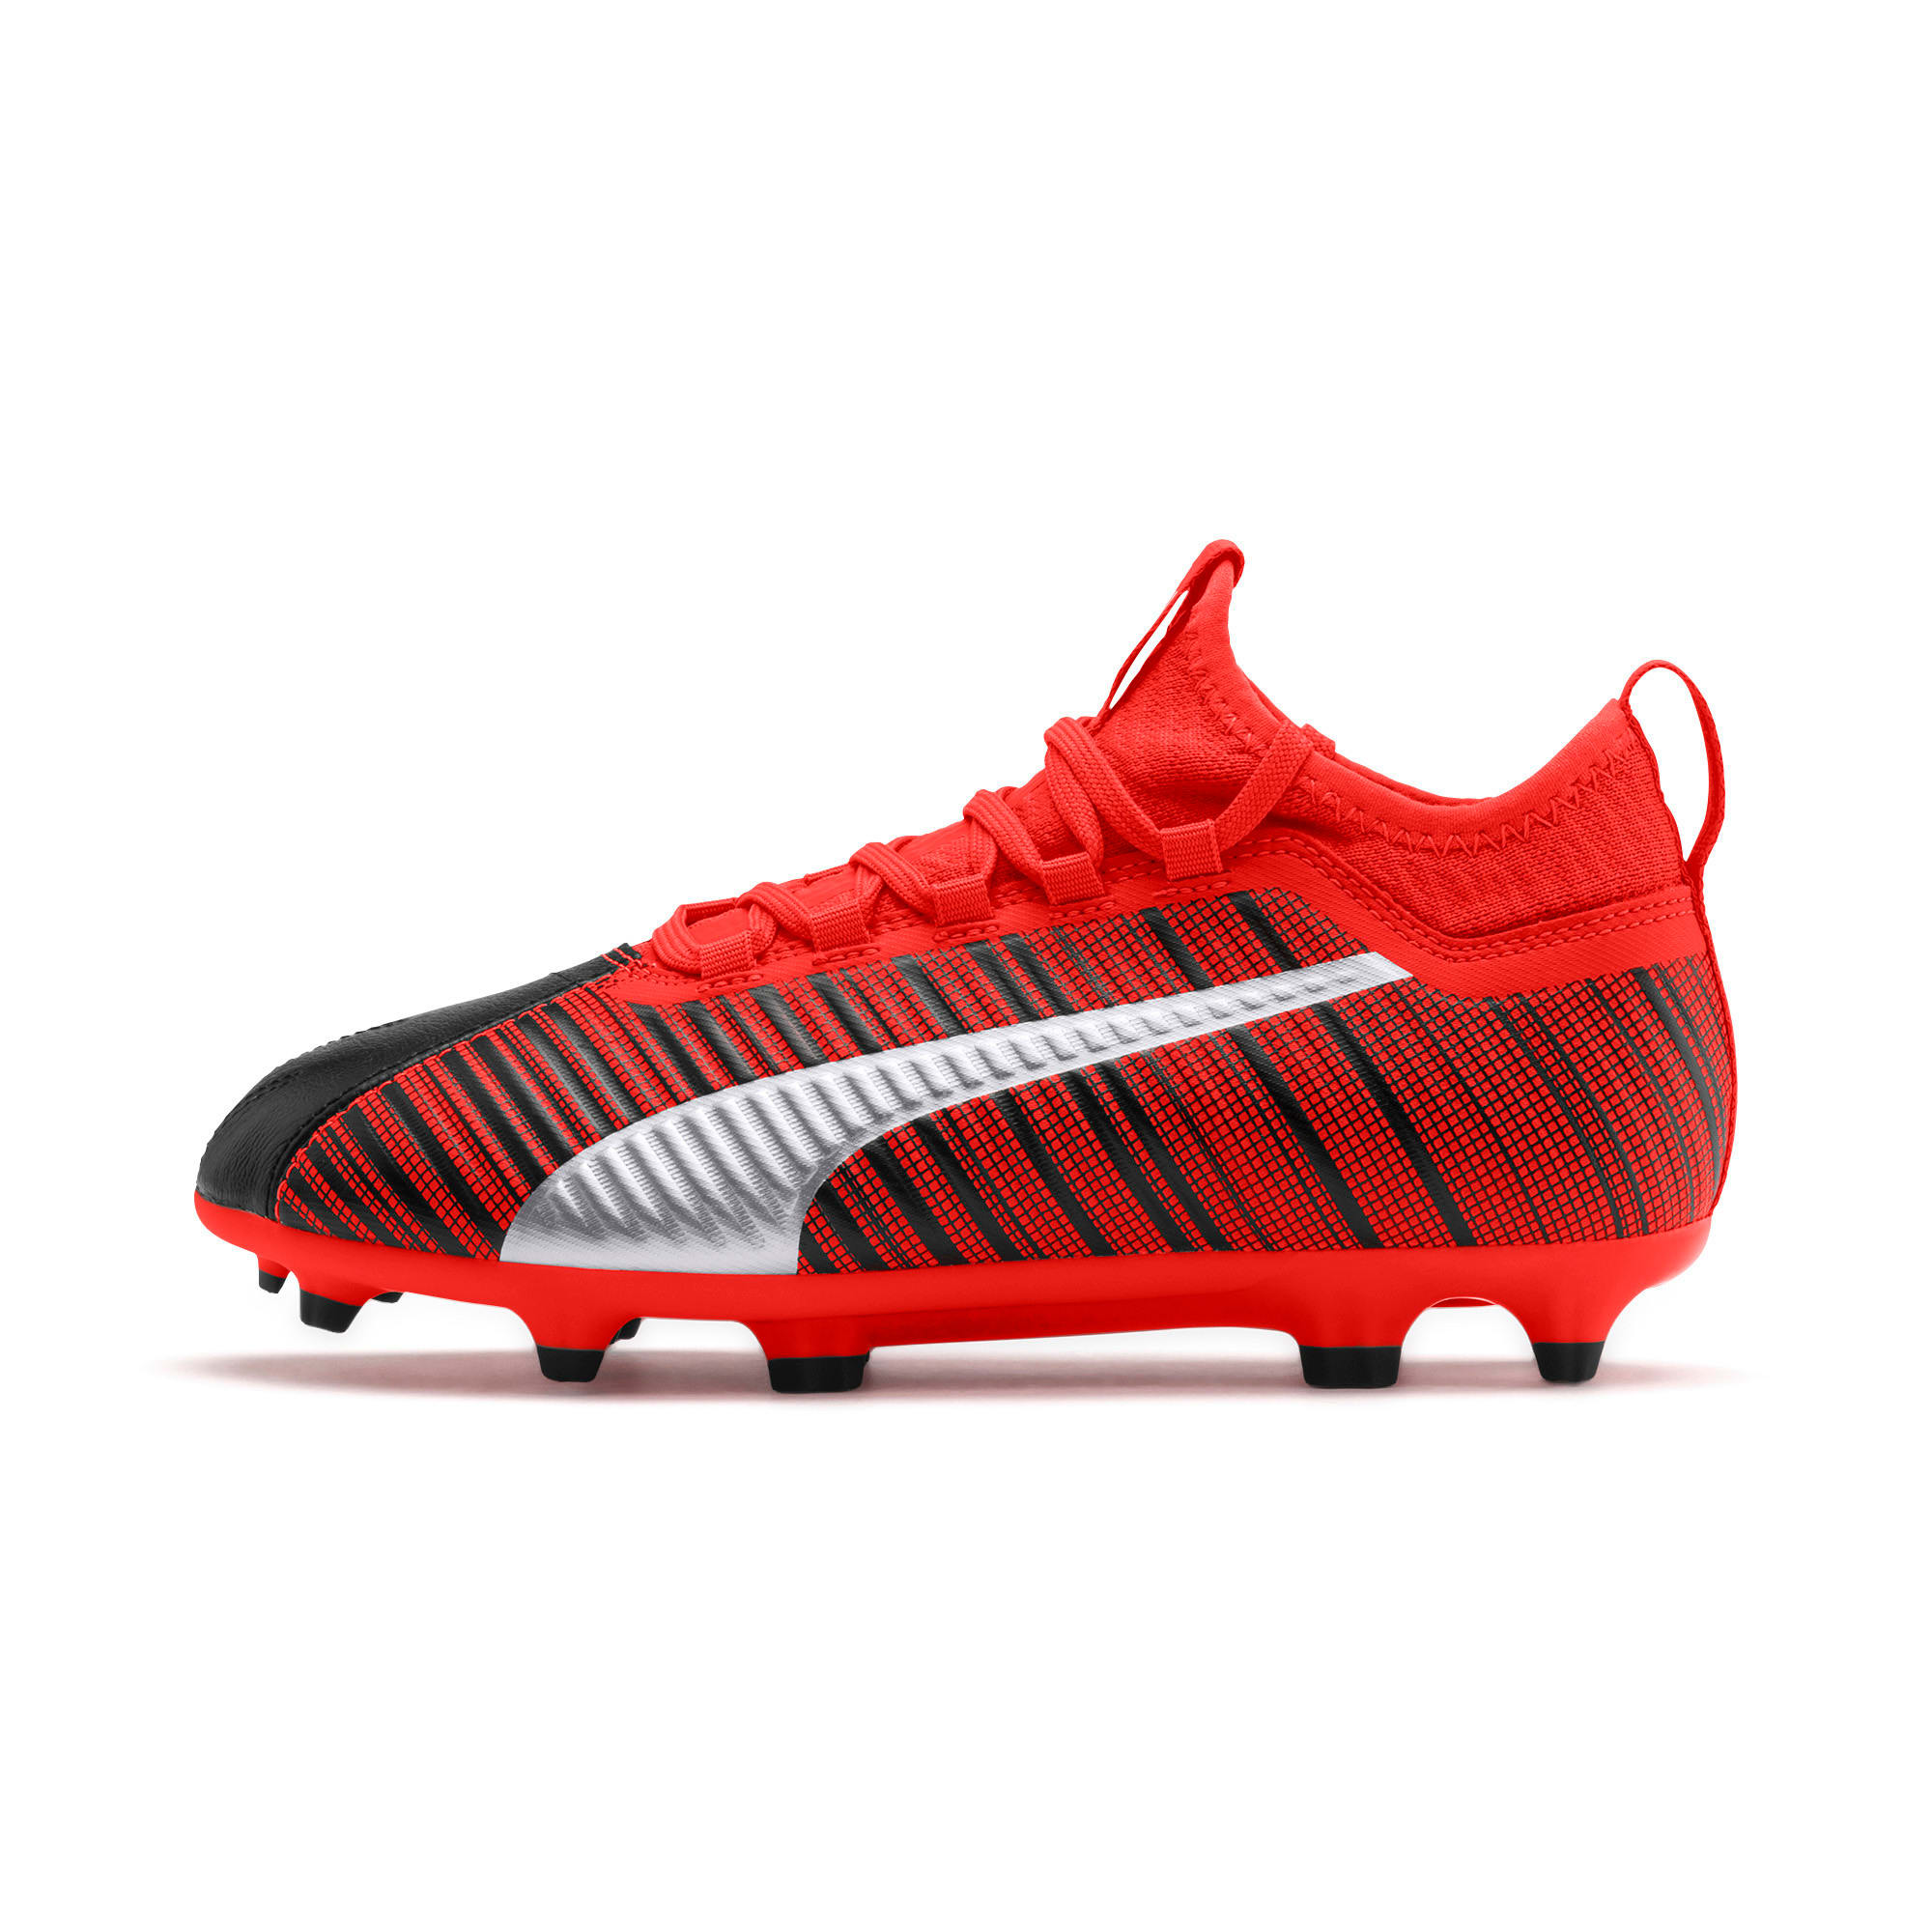 Thumbnail 1 of PUMA ONE 5.3 FG/AG Soccer Cleats JR, Black-Nrgy Red-Aged Silver, medium